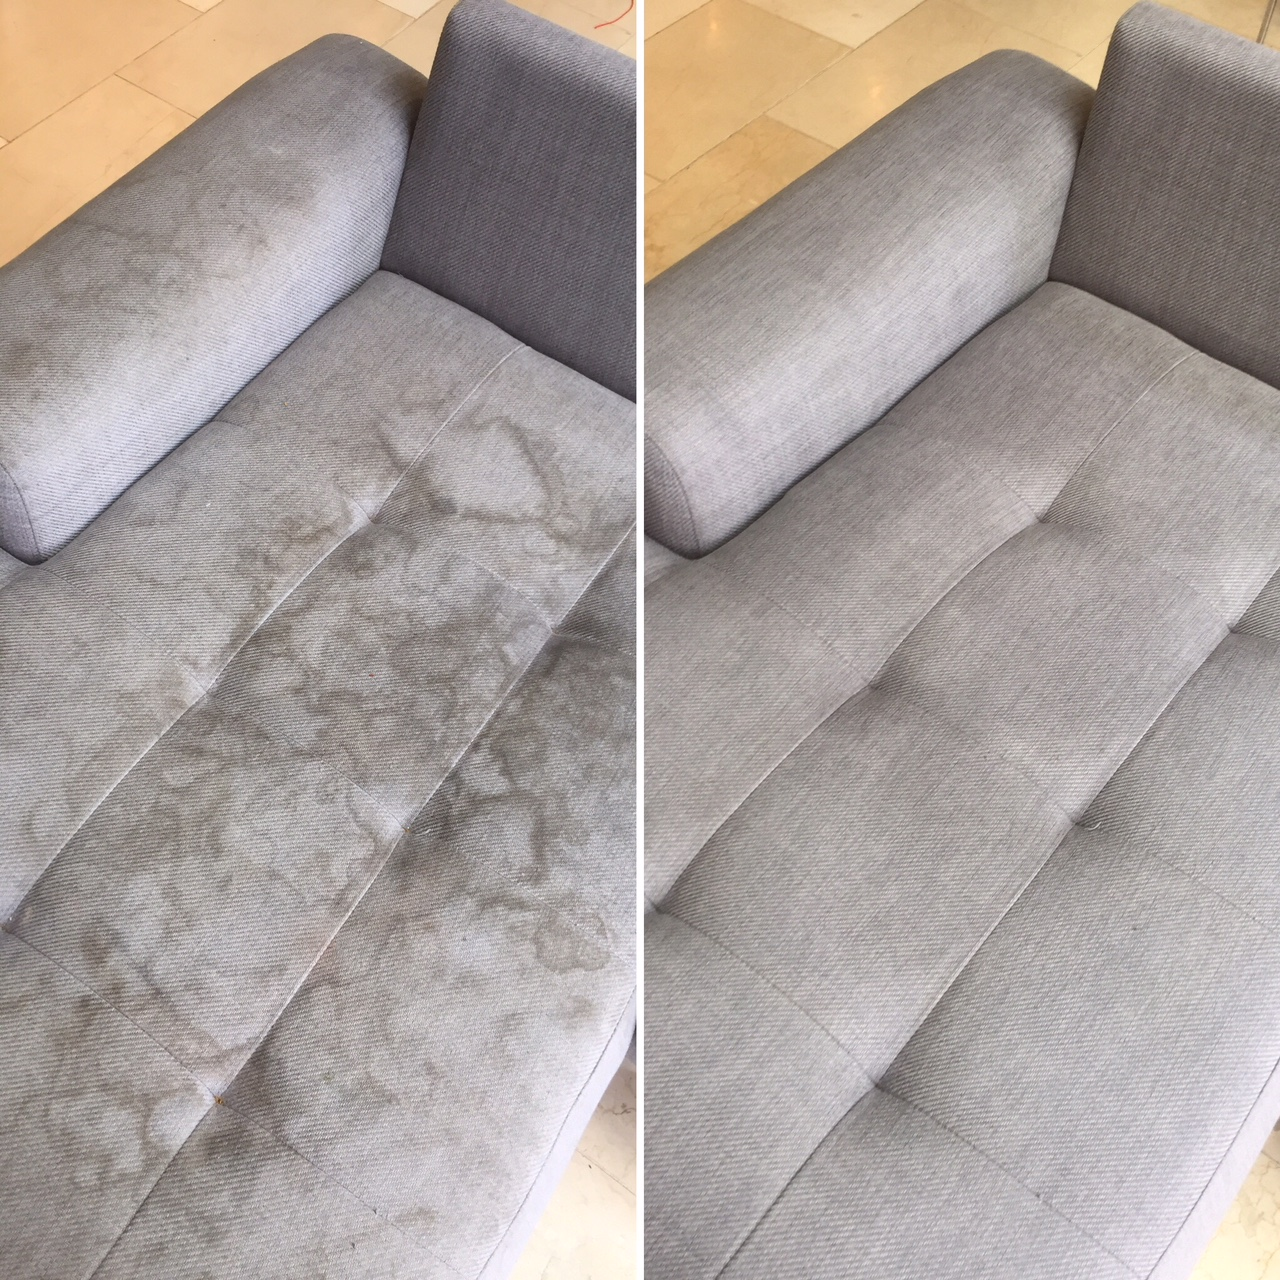 upholstery cleaning for sofa ashley furniture nolana all gleaming clean